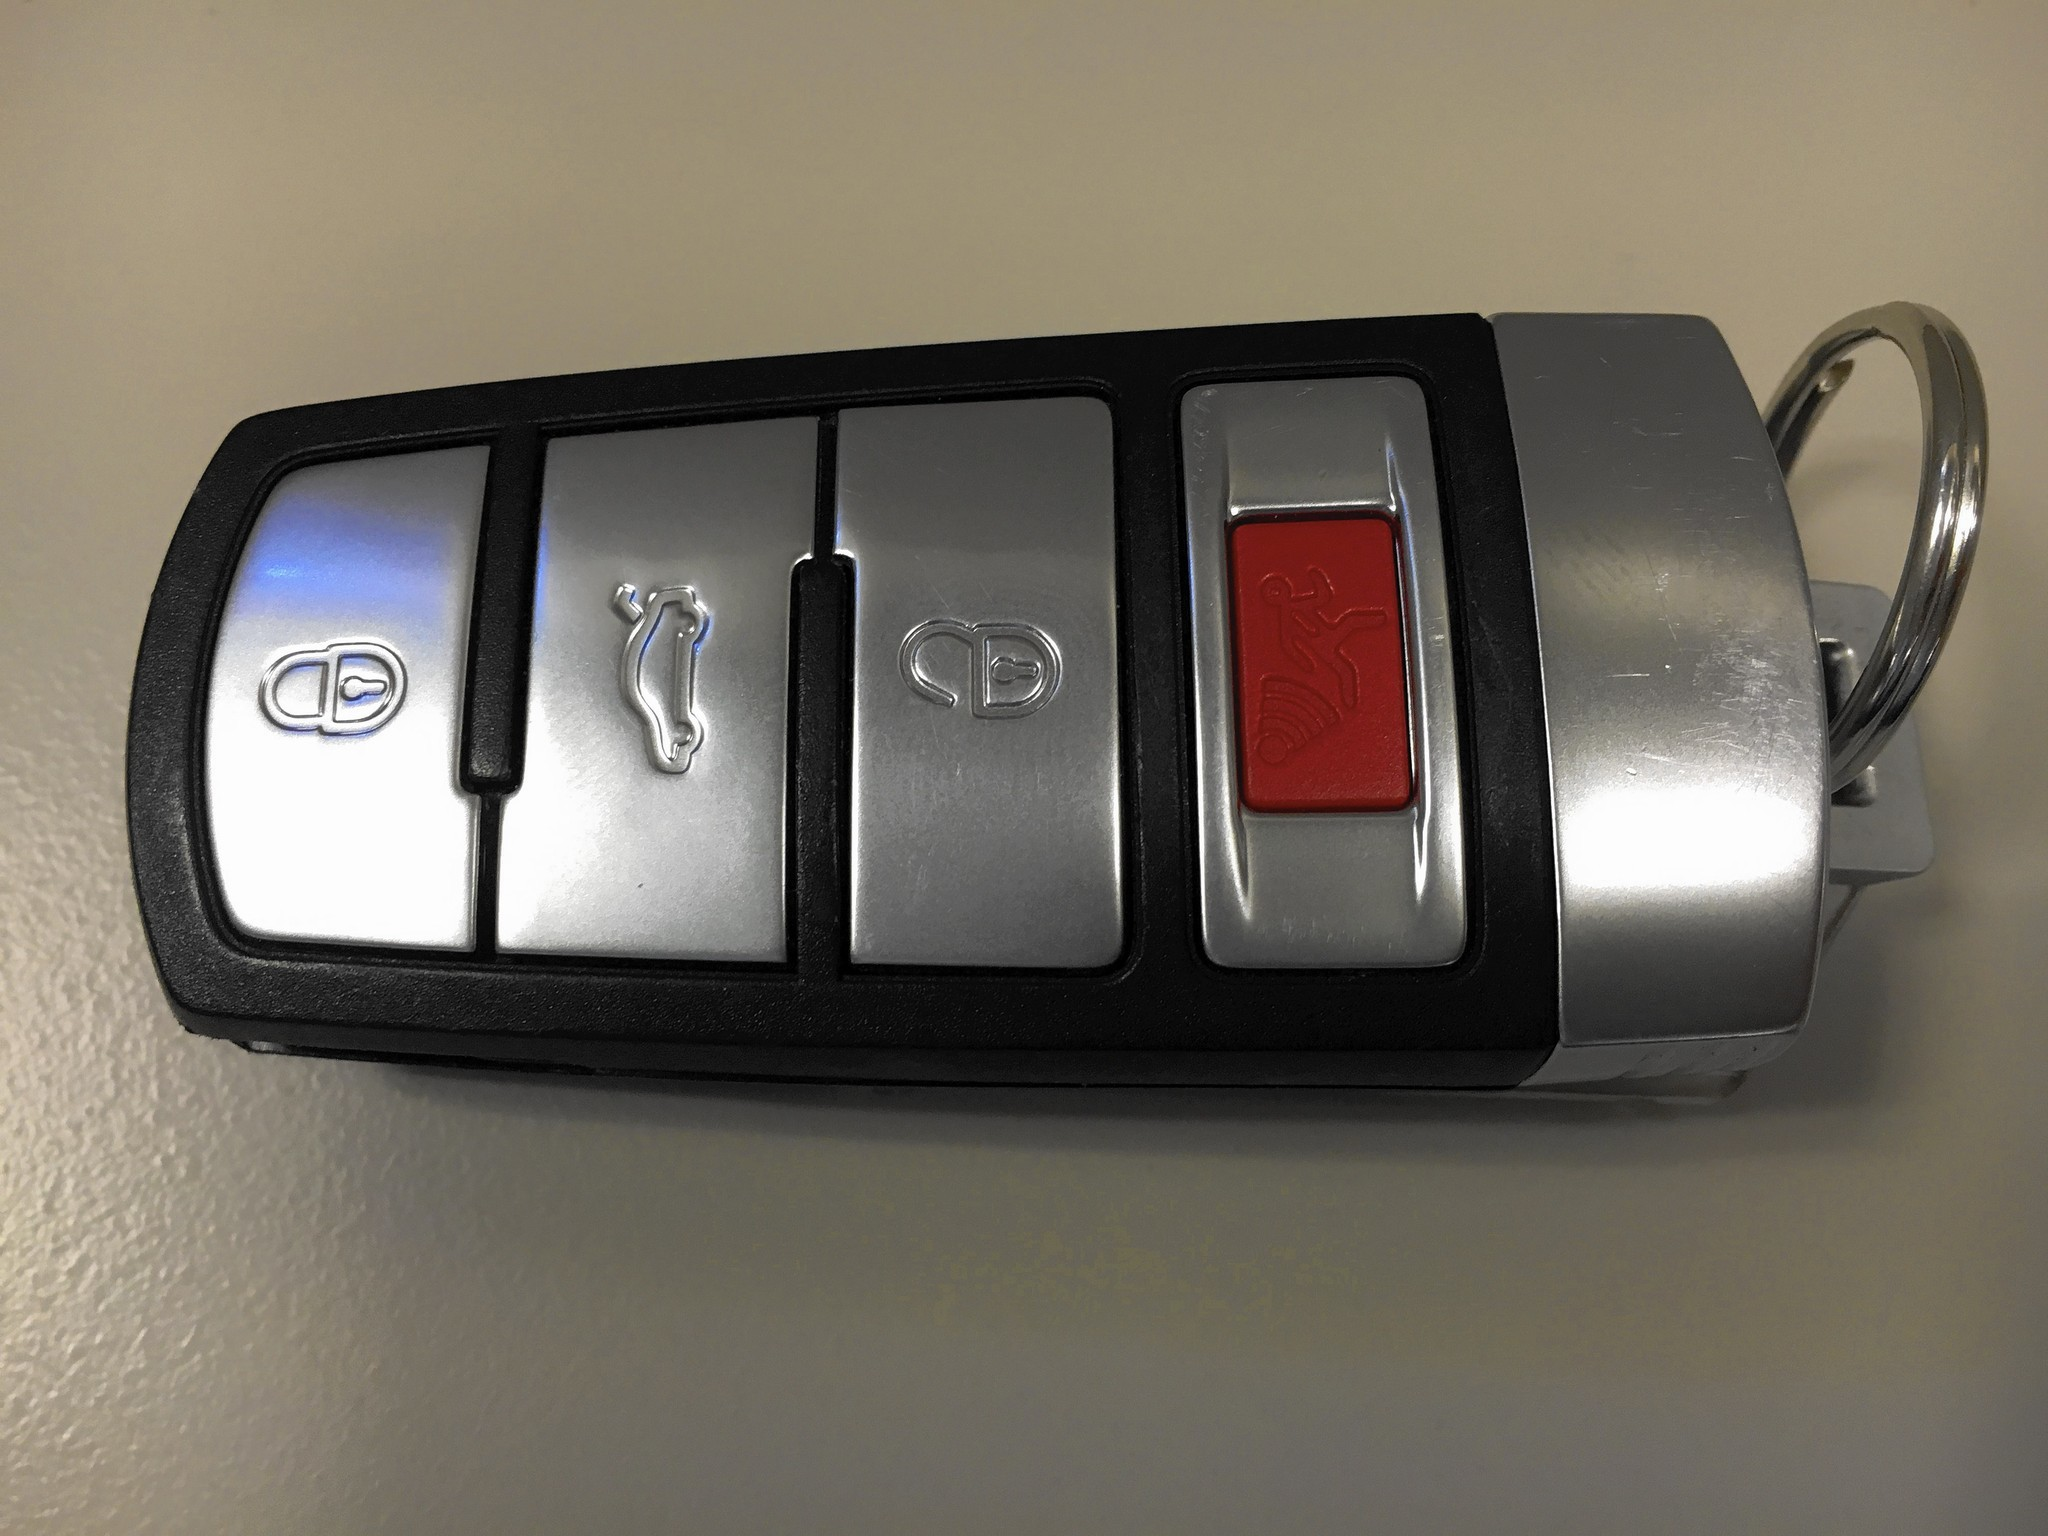 Leaving key fob in car can drain battery - Chicago Tribune